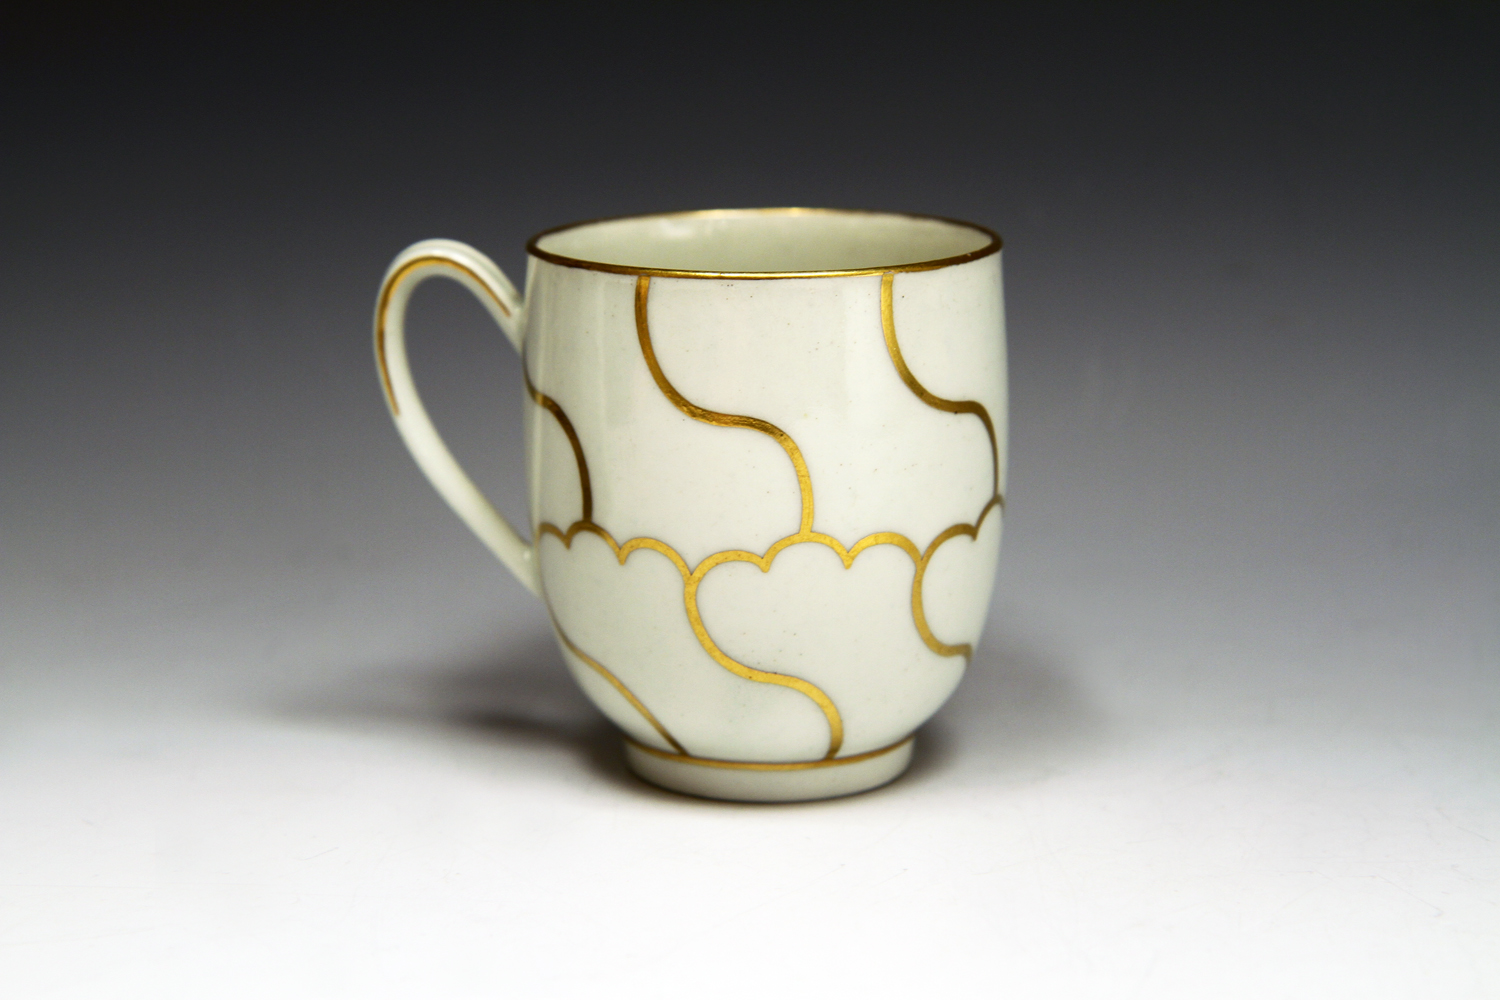 1058 - A good Worcester coffee cup and saucer c 1775